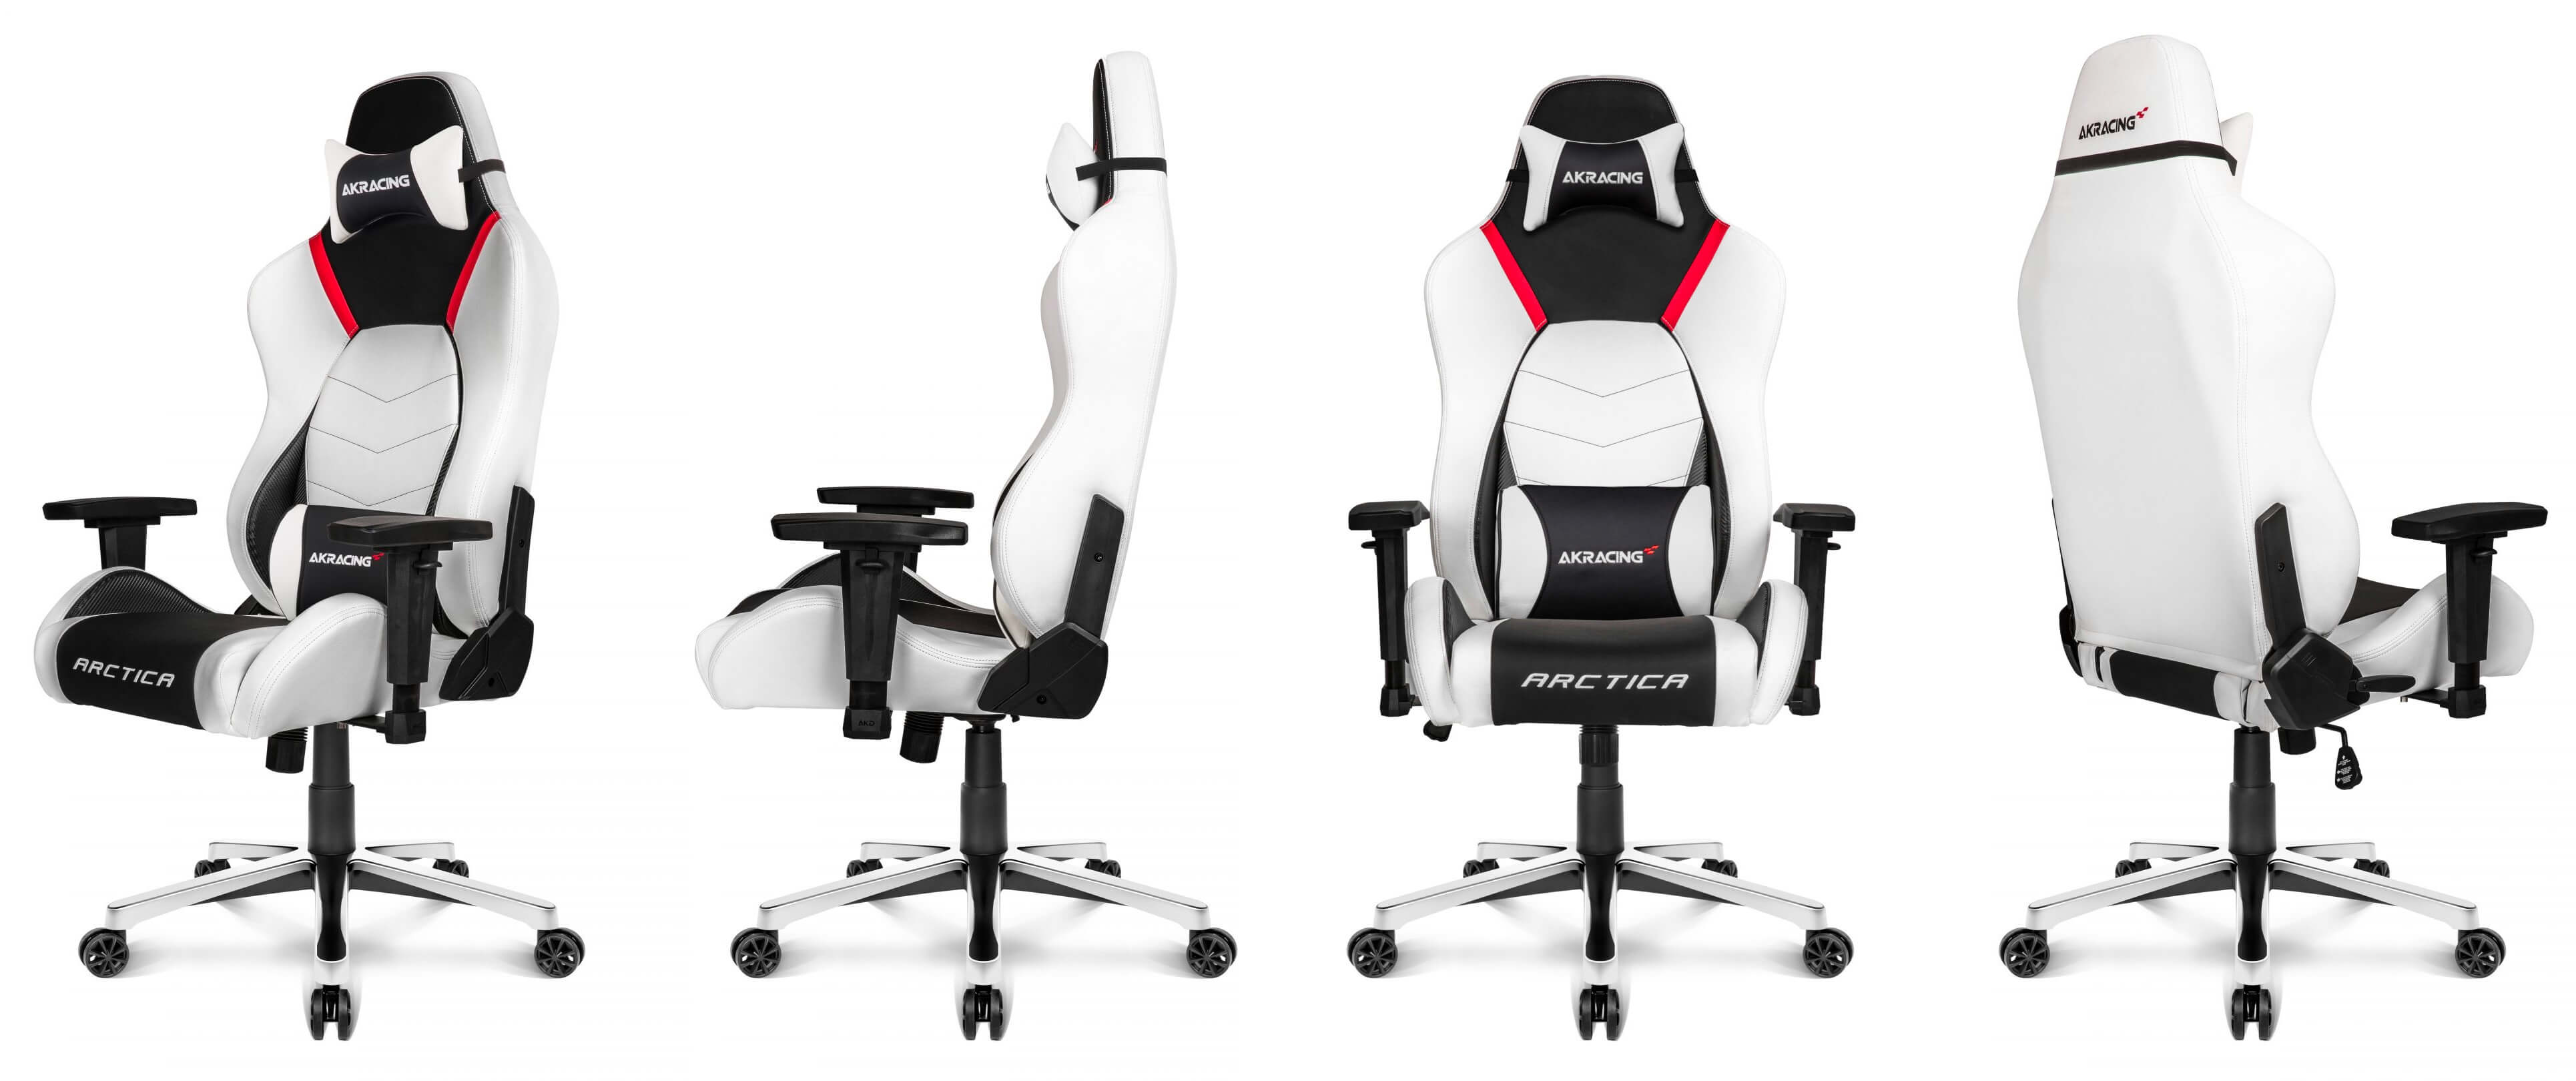 Tremendous Akracing Arctica Gaming Chair Review Style Meets Comfort Machost Co Dining Chair Design Ideas Machostcouk